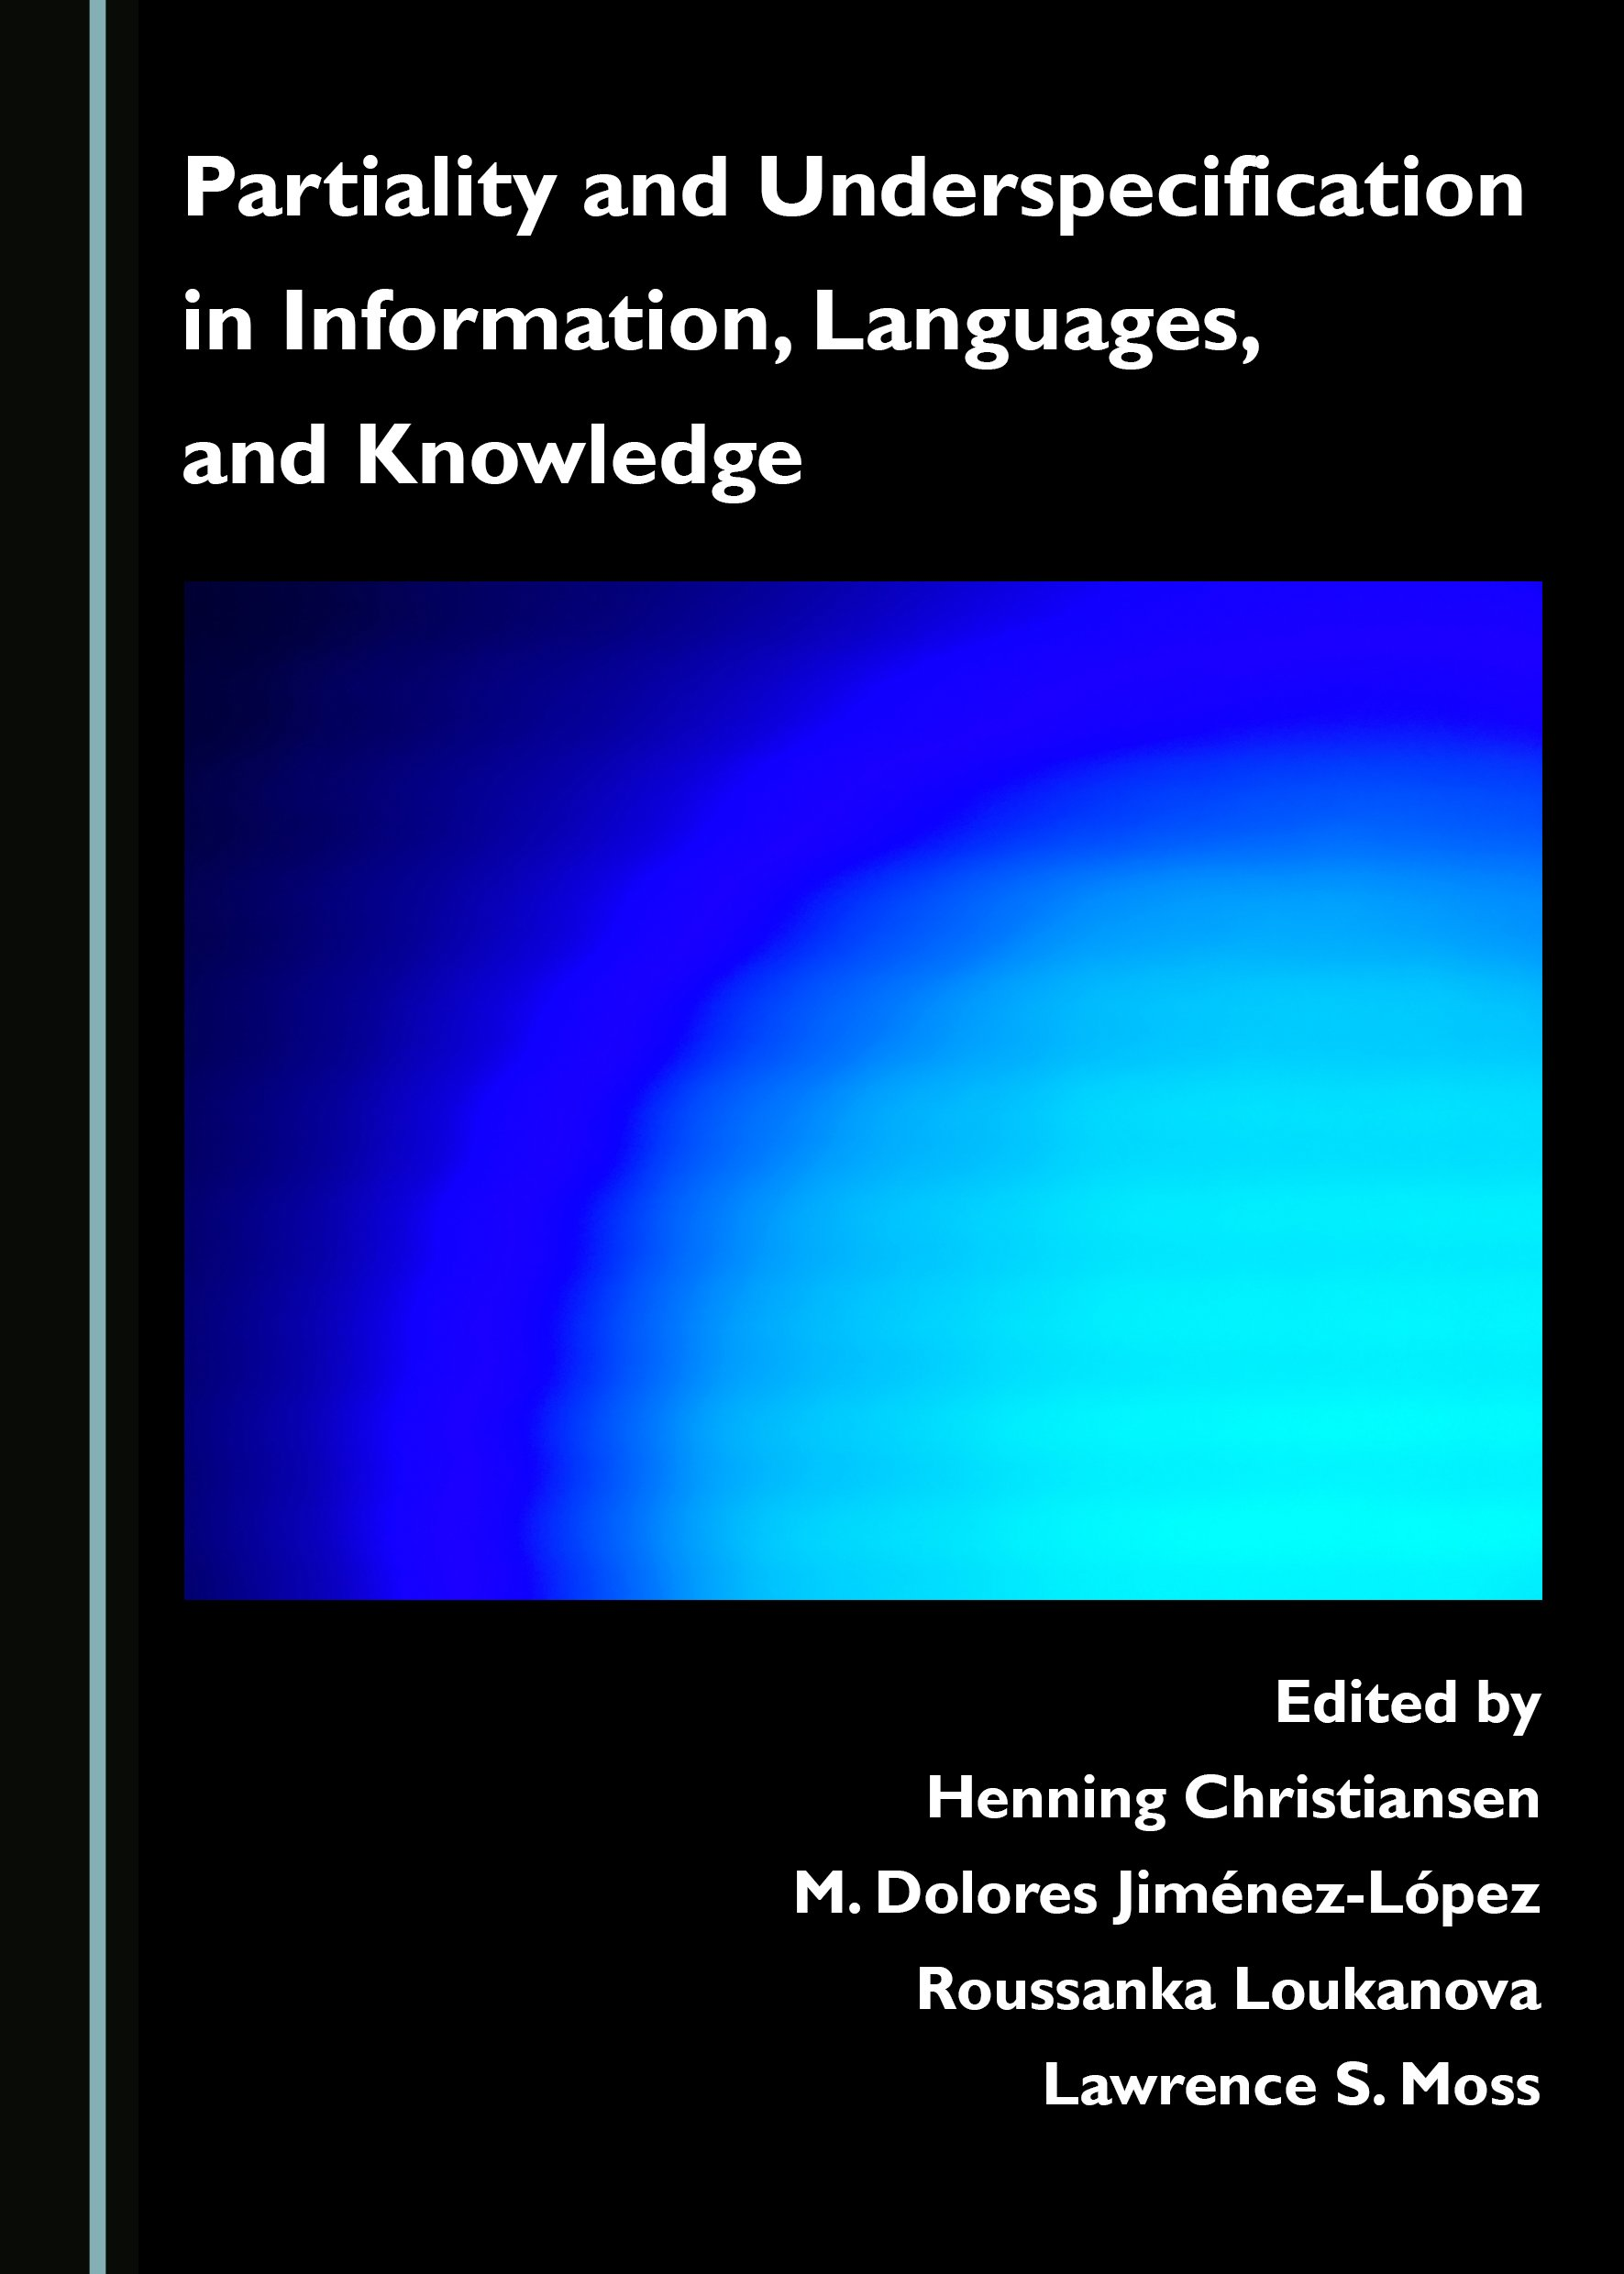 Partiality and Underspecification in Information, Languages, and Knowledge